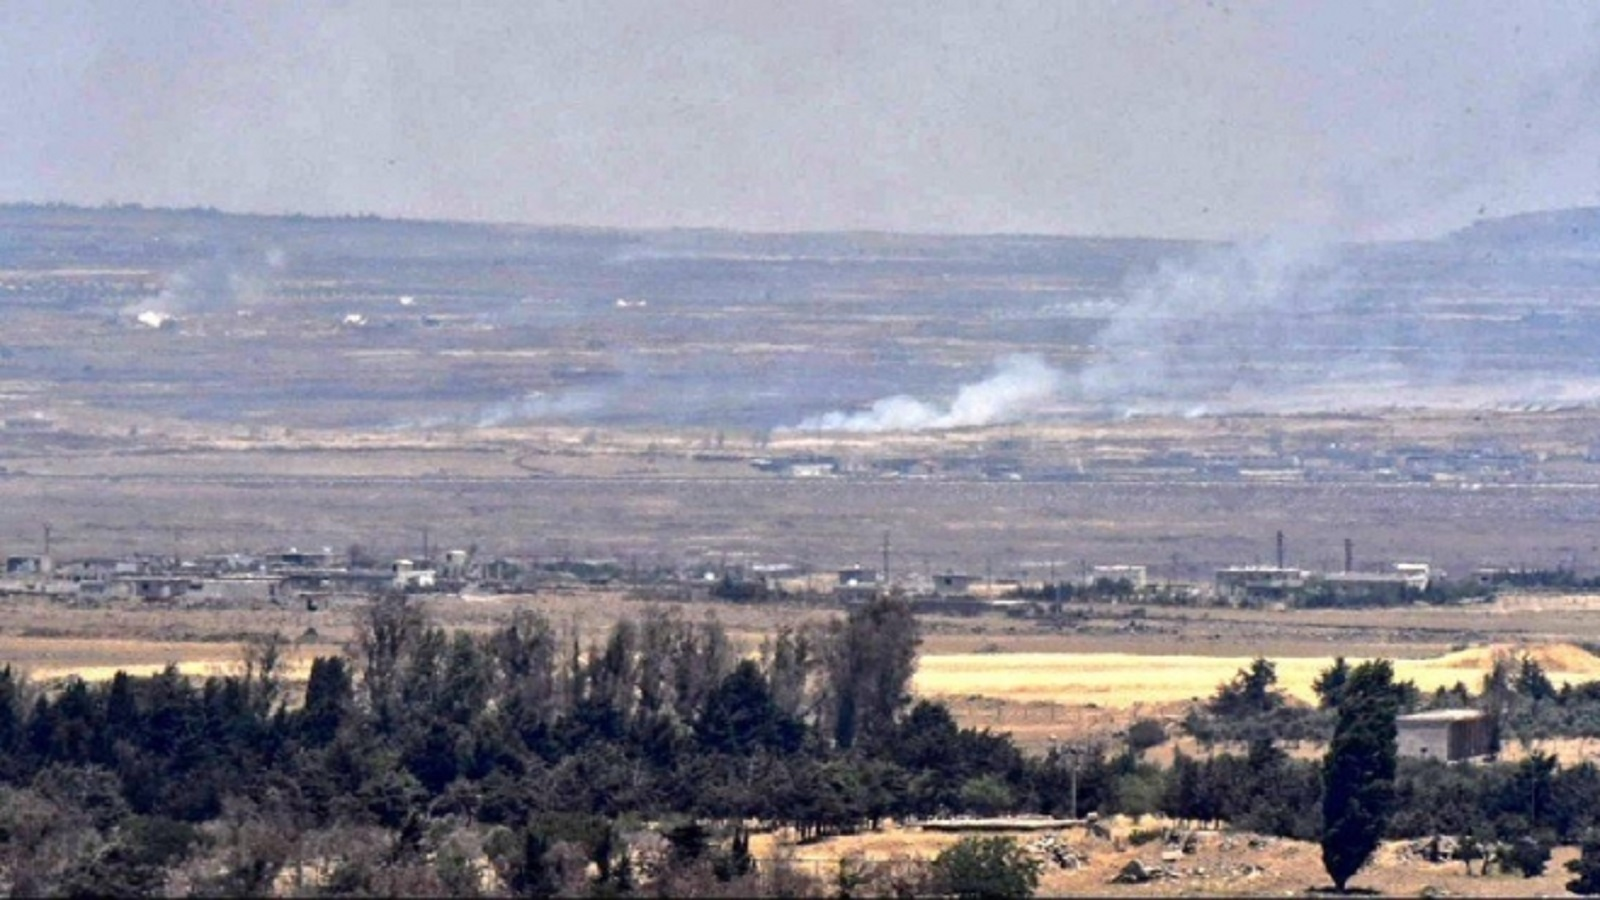 In a new incident, an Israeli tank targets a Hezbollah military point in Al-Quneitra